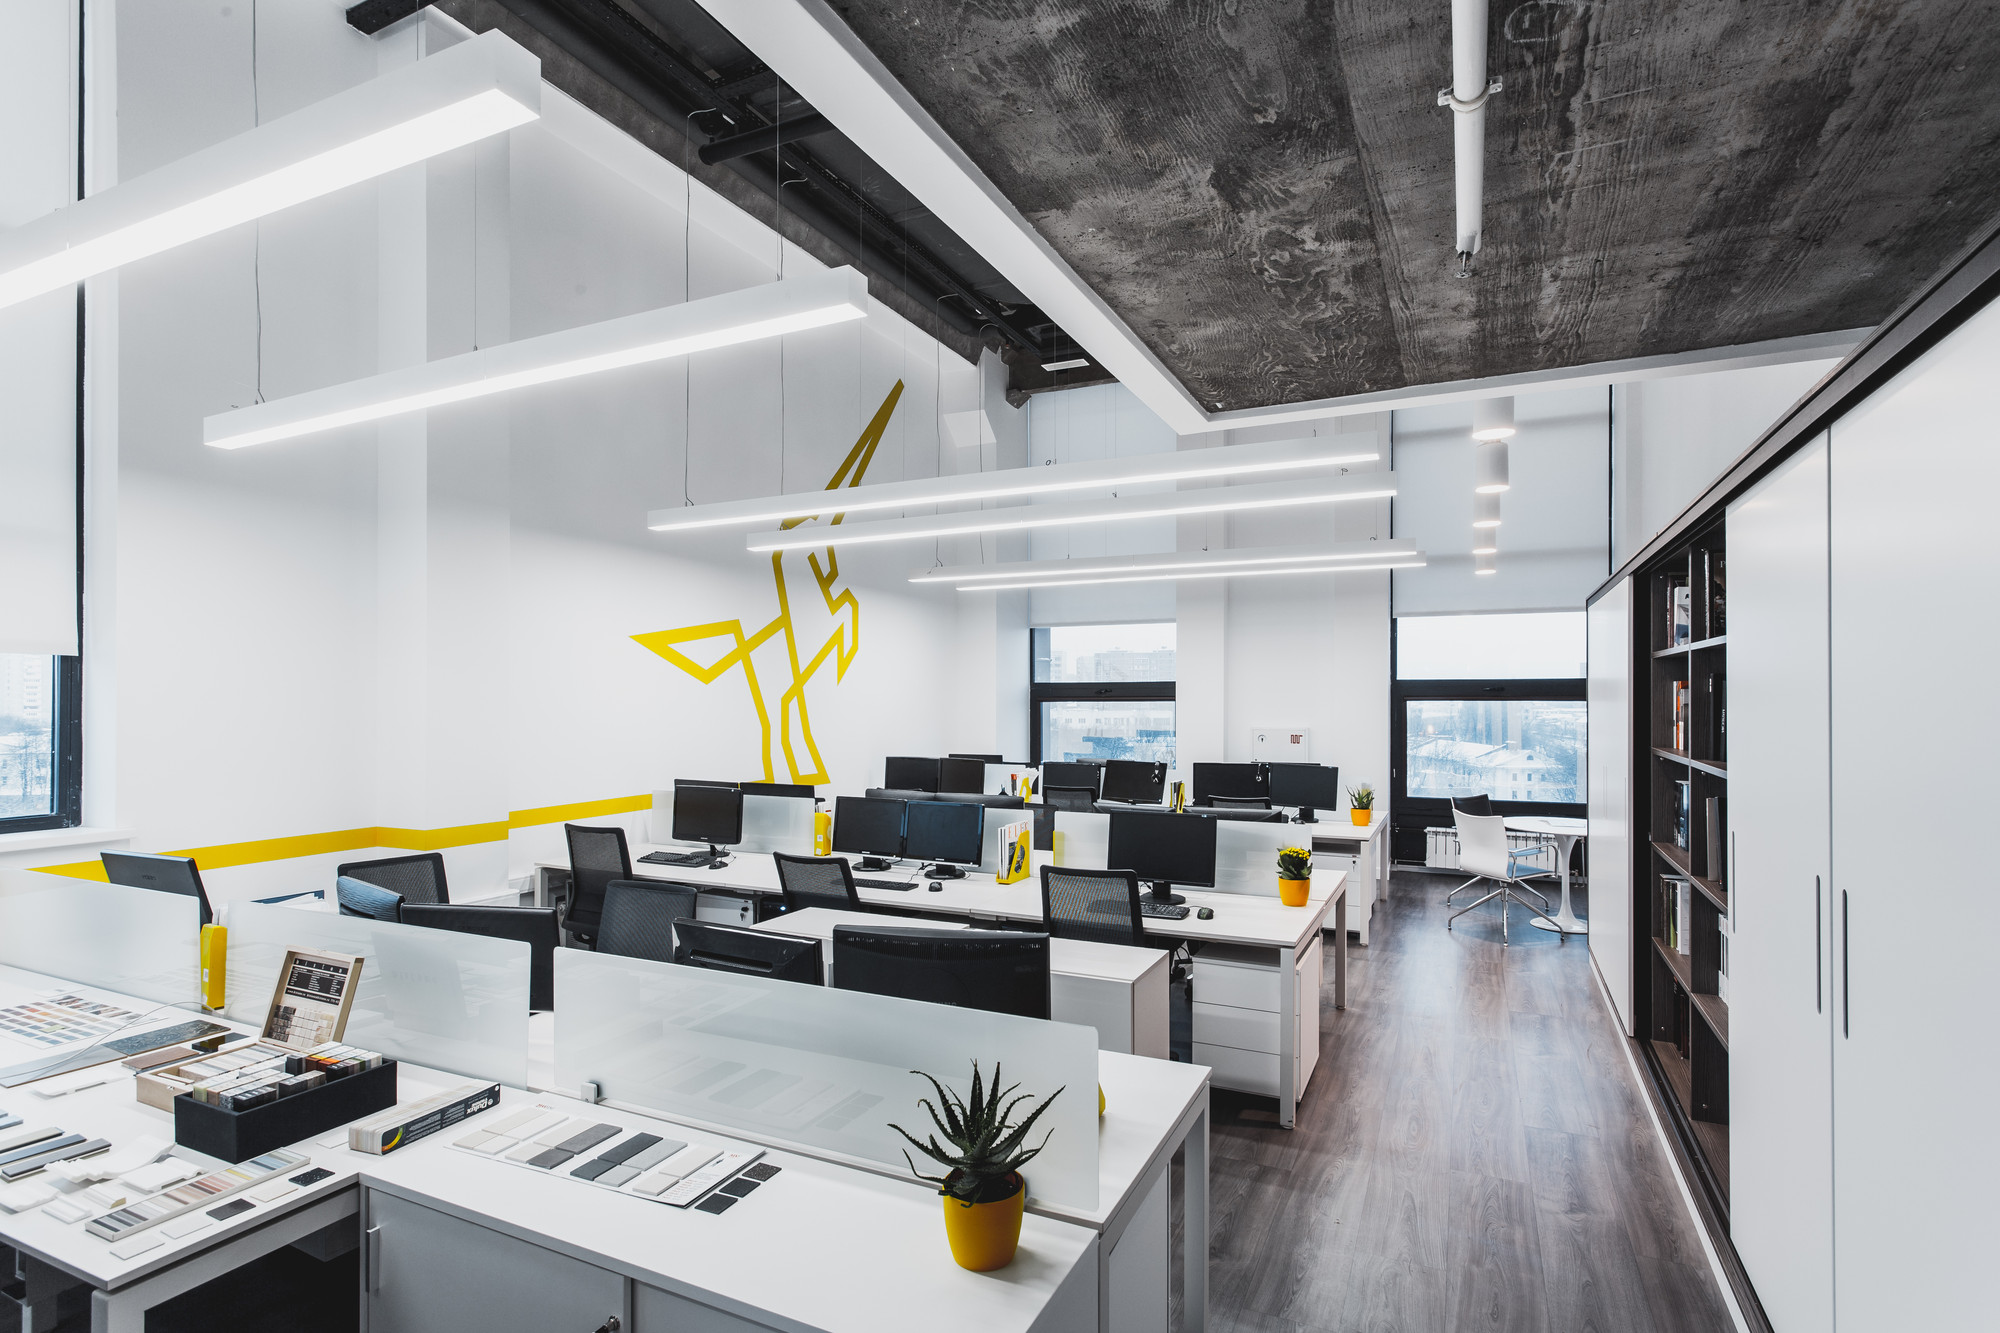 Wondrous Office Design Ind Architects Archdaily Largest Home Design Picture Inspirations Pitcheantrous